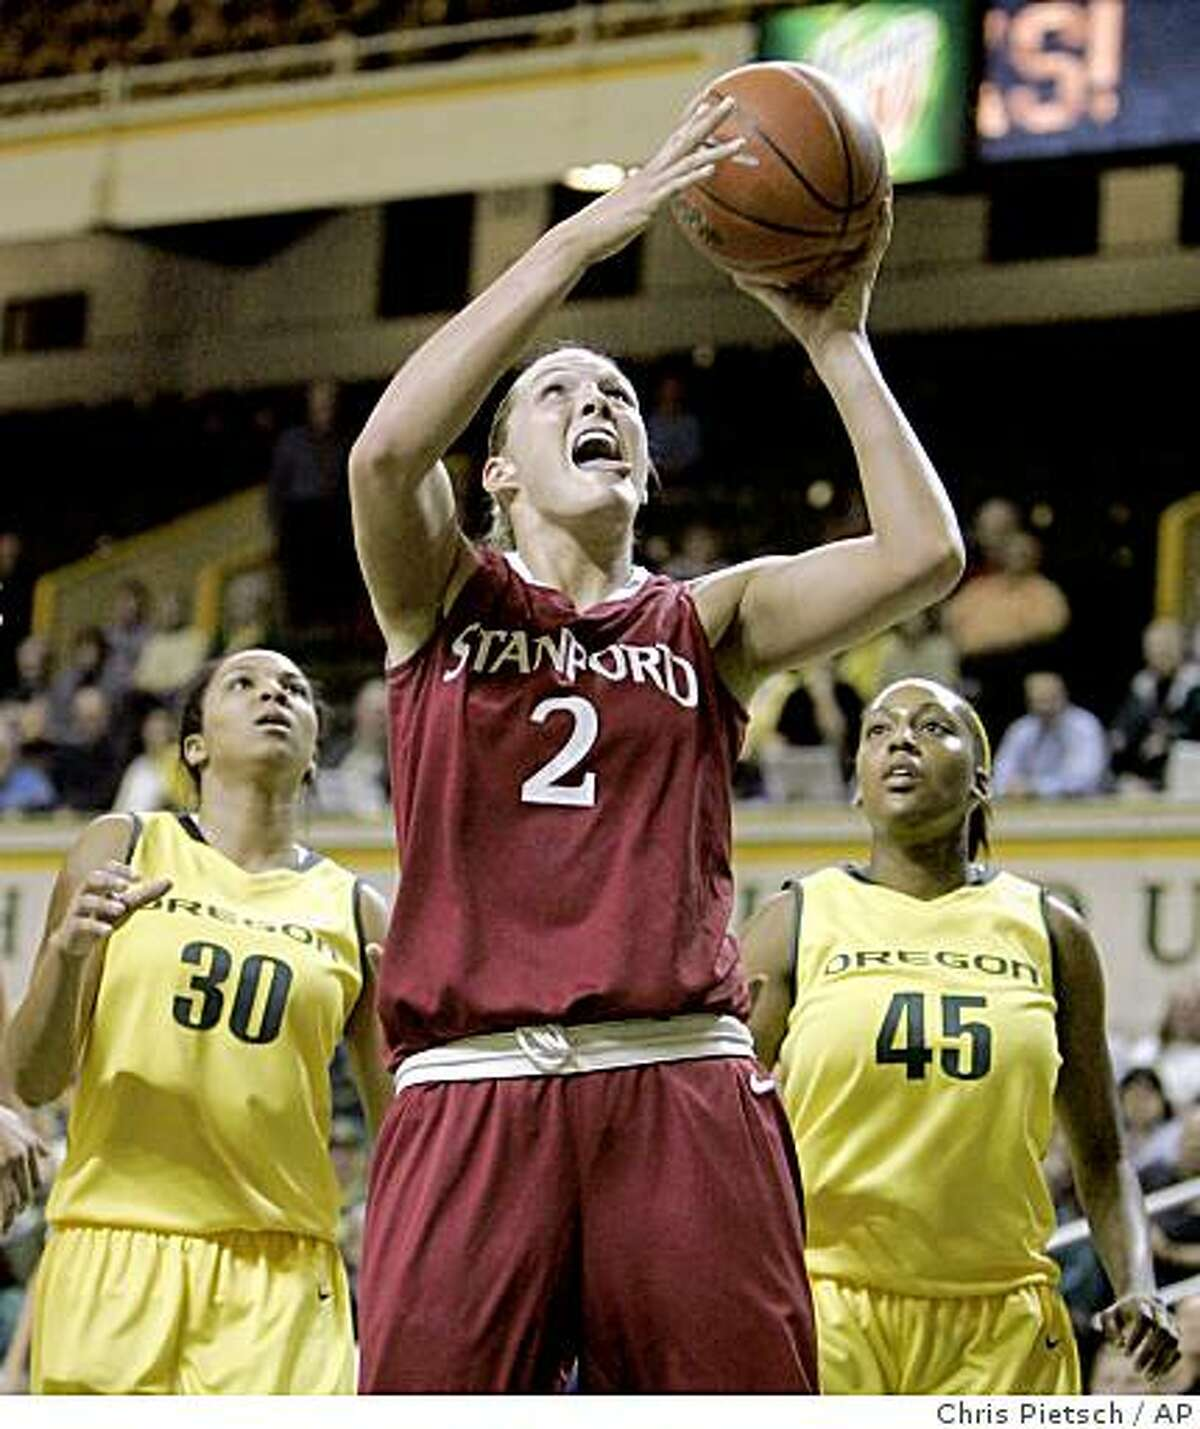 Stanford's Jayne Appel, center, shoots under the basket after slipping by Oregon's Jasmin Holliday, left, and Lindsey Saffold during the first half of an NCAA college basketball game in Eugene, Ore., Thursday, Jan. 22, 2009. (AP Photo/Chris Pietsch)